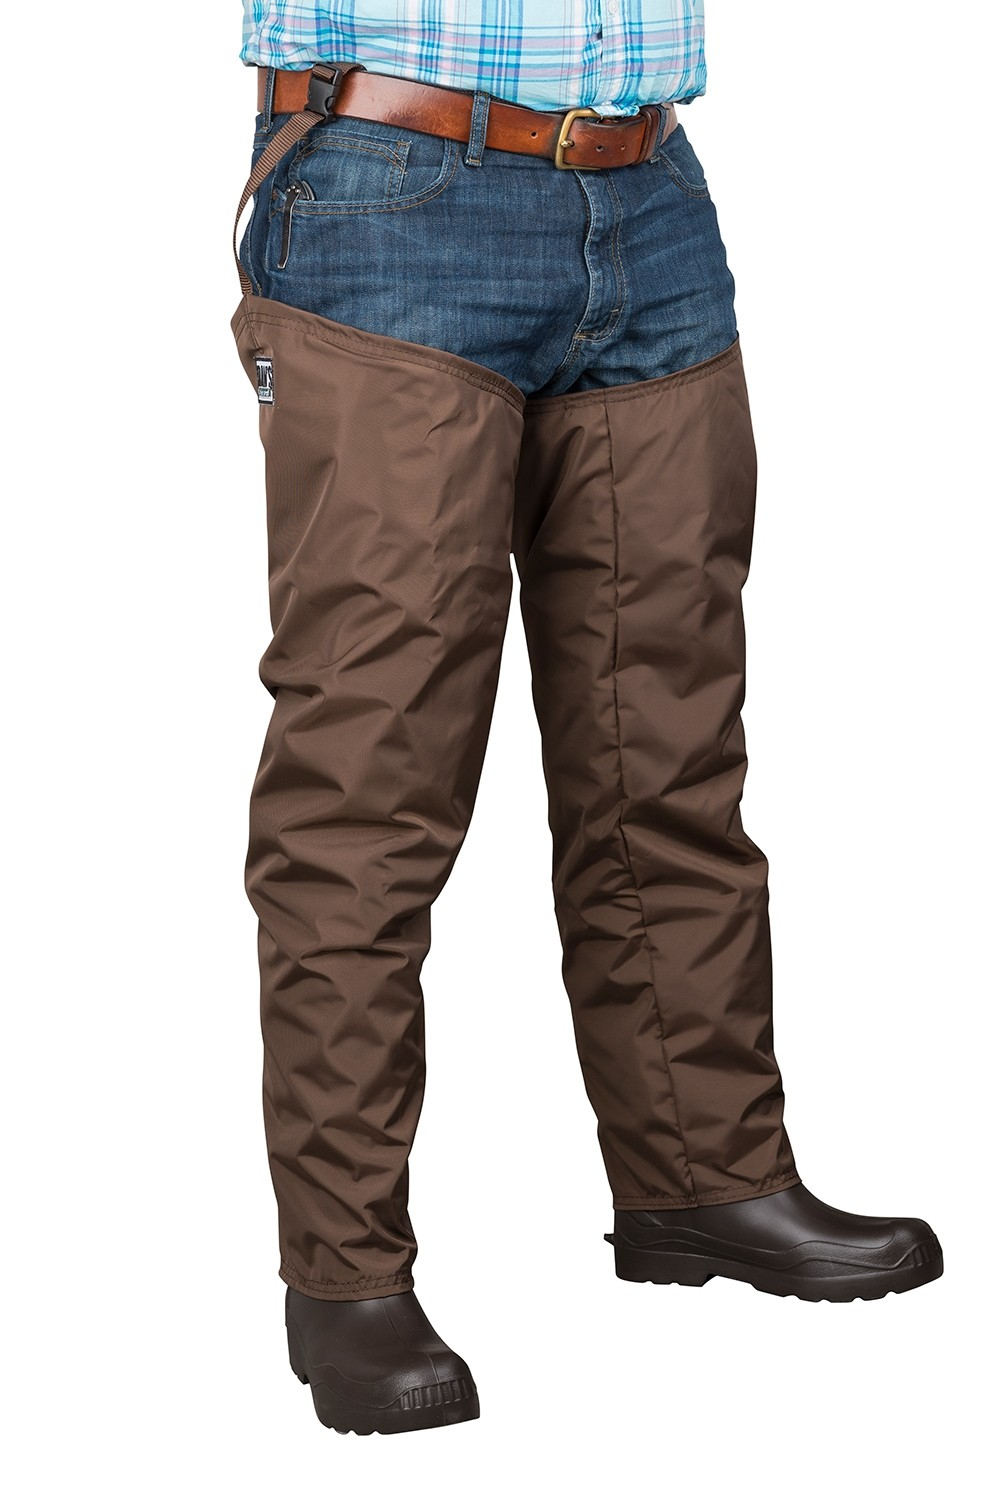 Protective Leg Chaps Hunting Work Chaps Three Styles